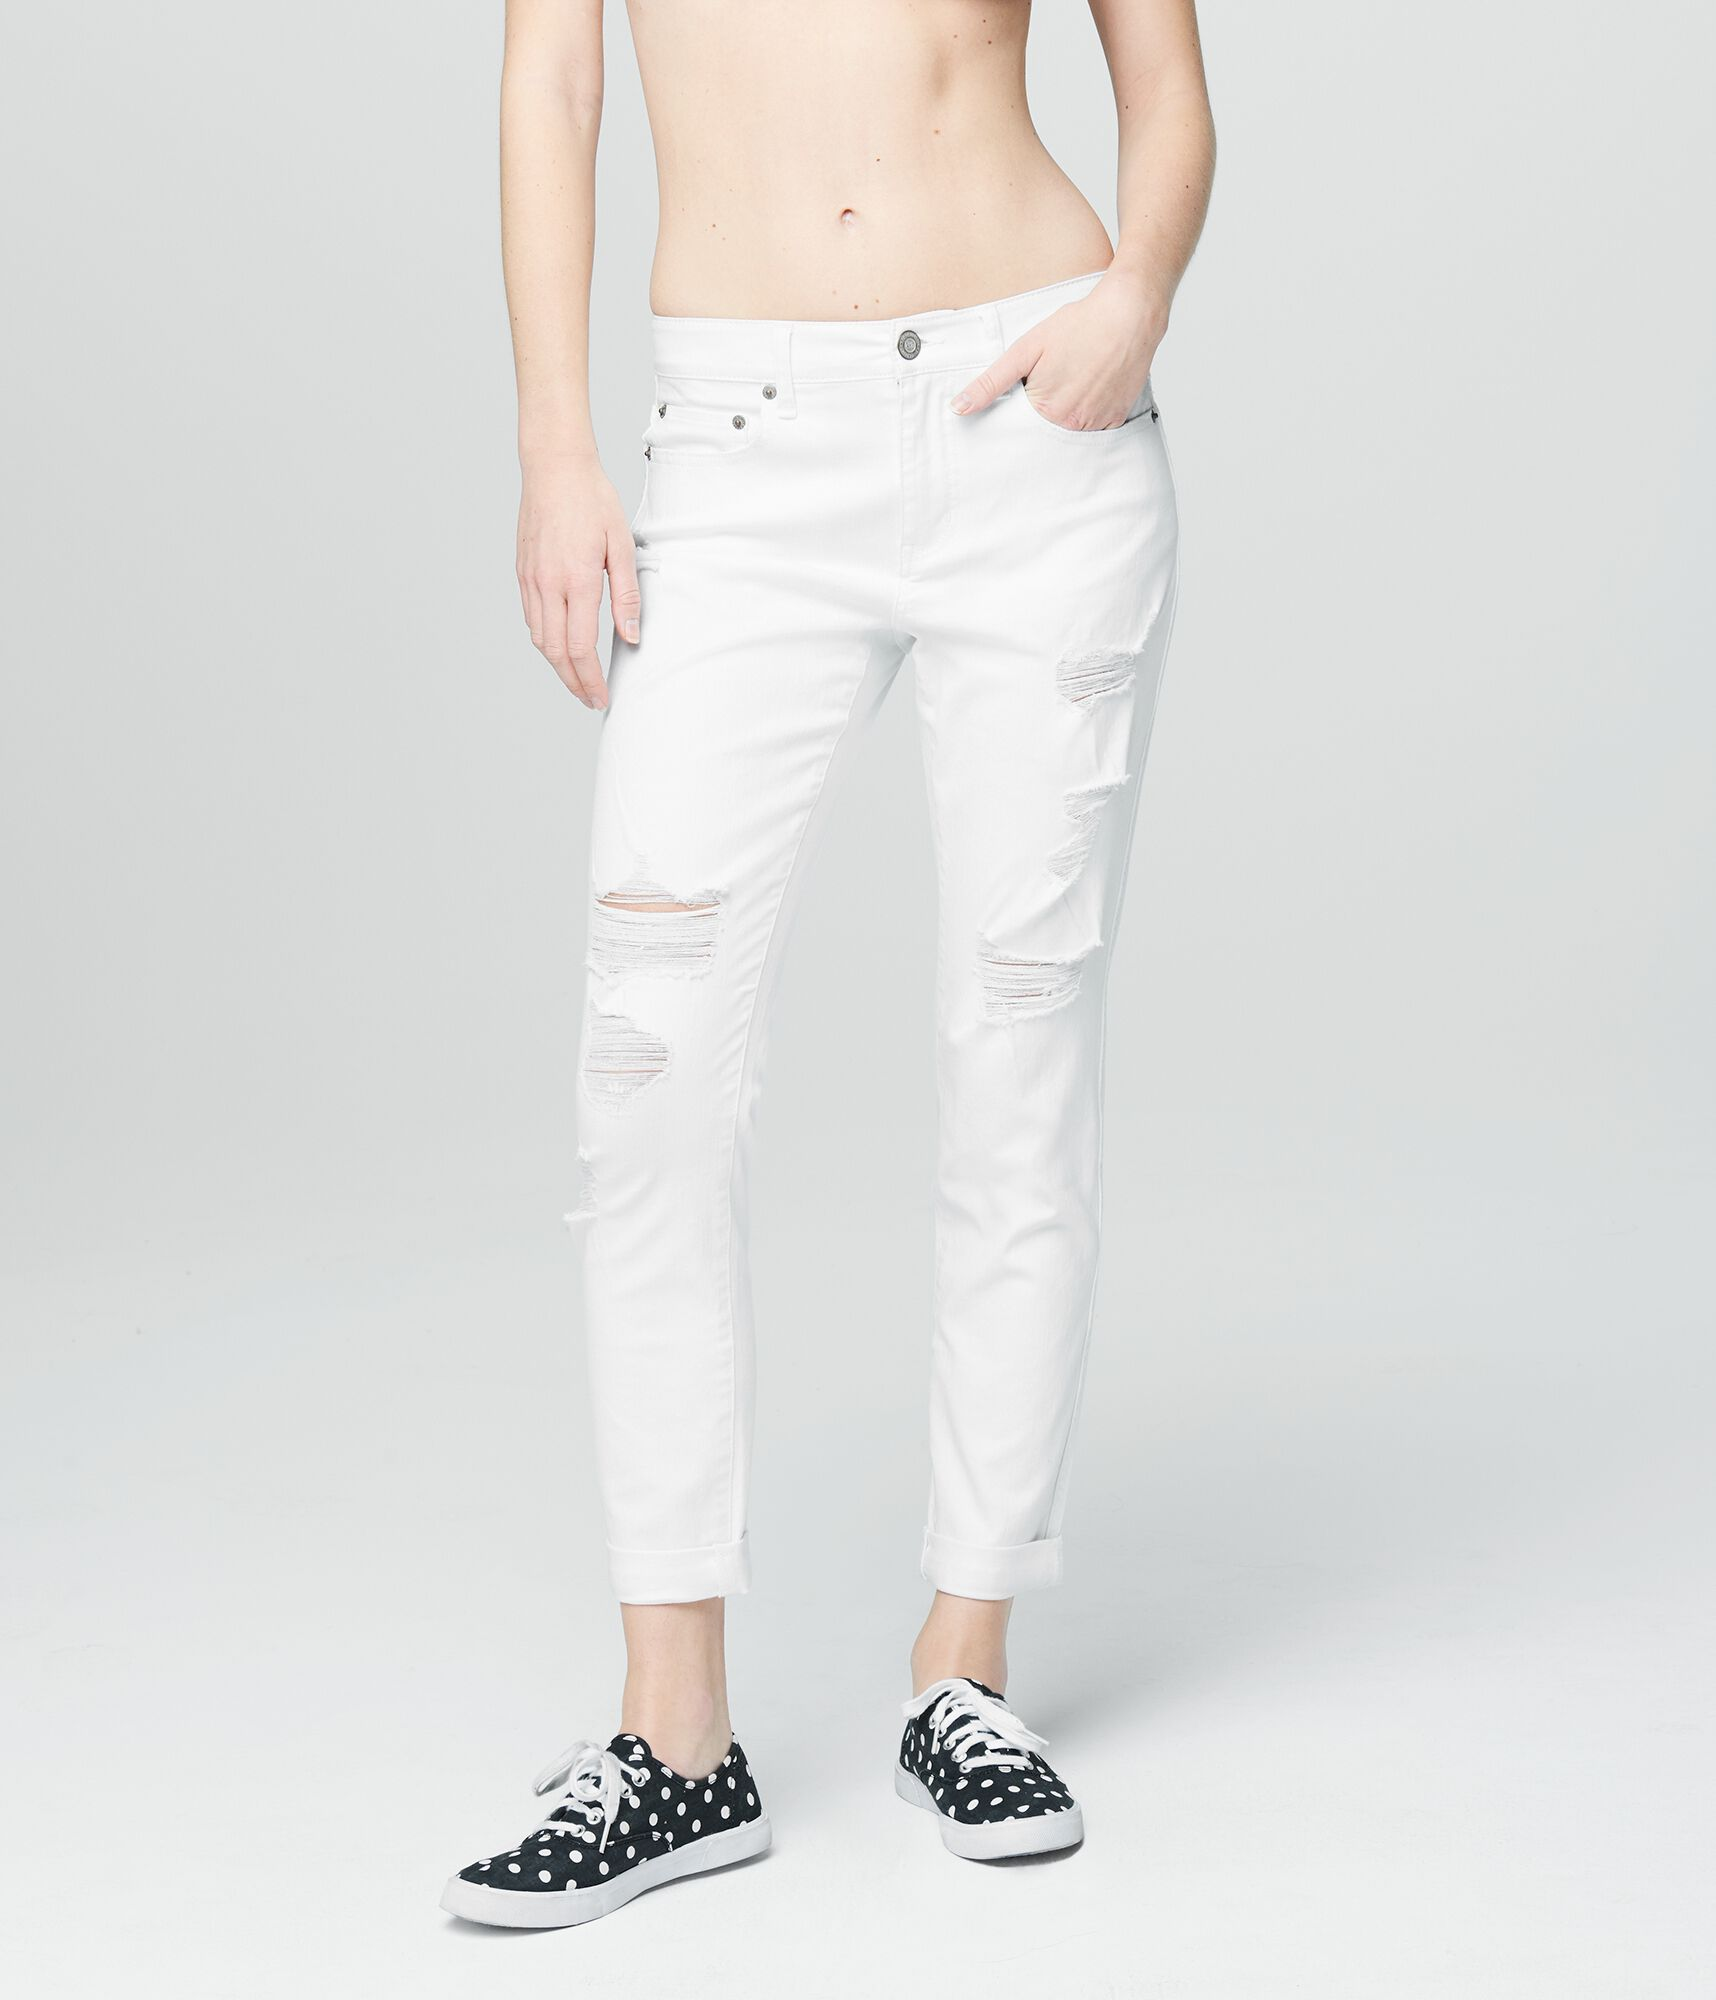 785c0305fdbe8 Destroyed White Jeans - Girlfriend Jeans